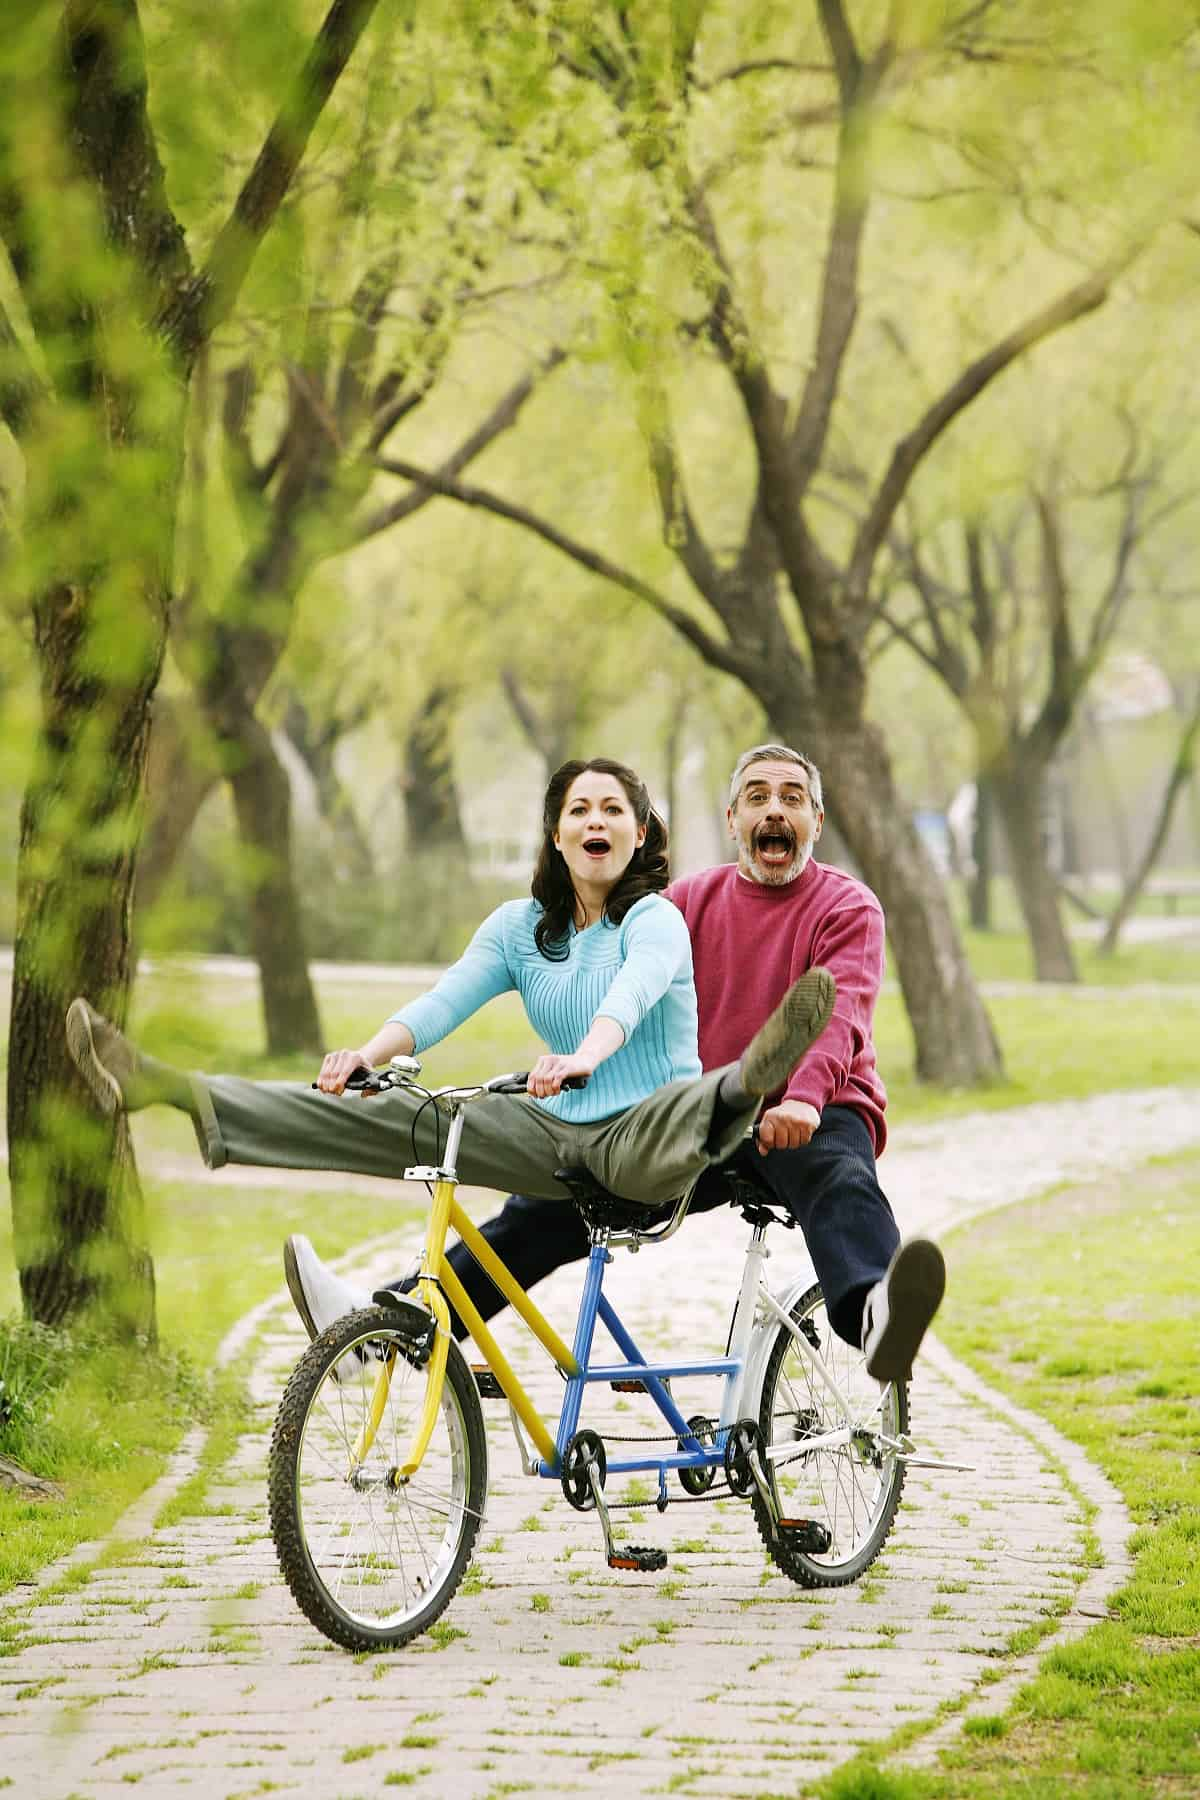 Couple having fun riding bicycle